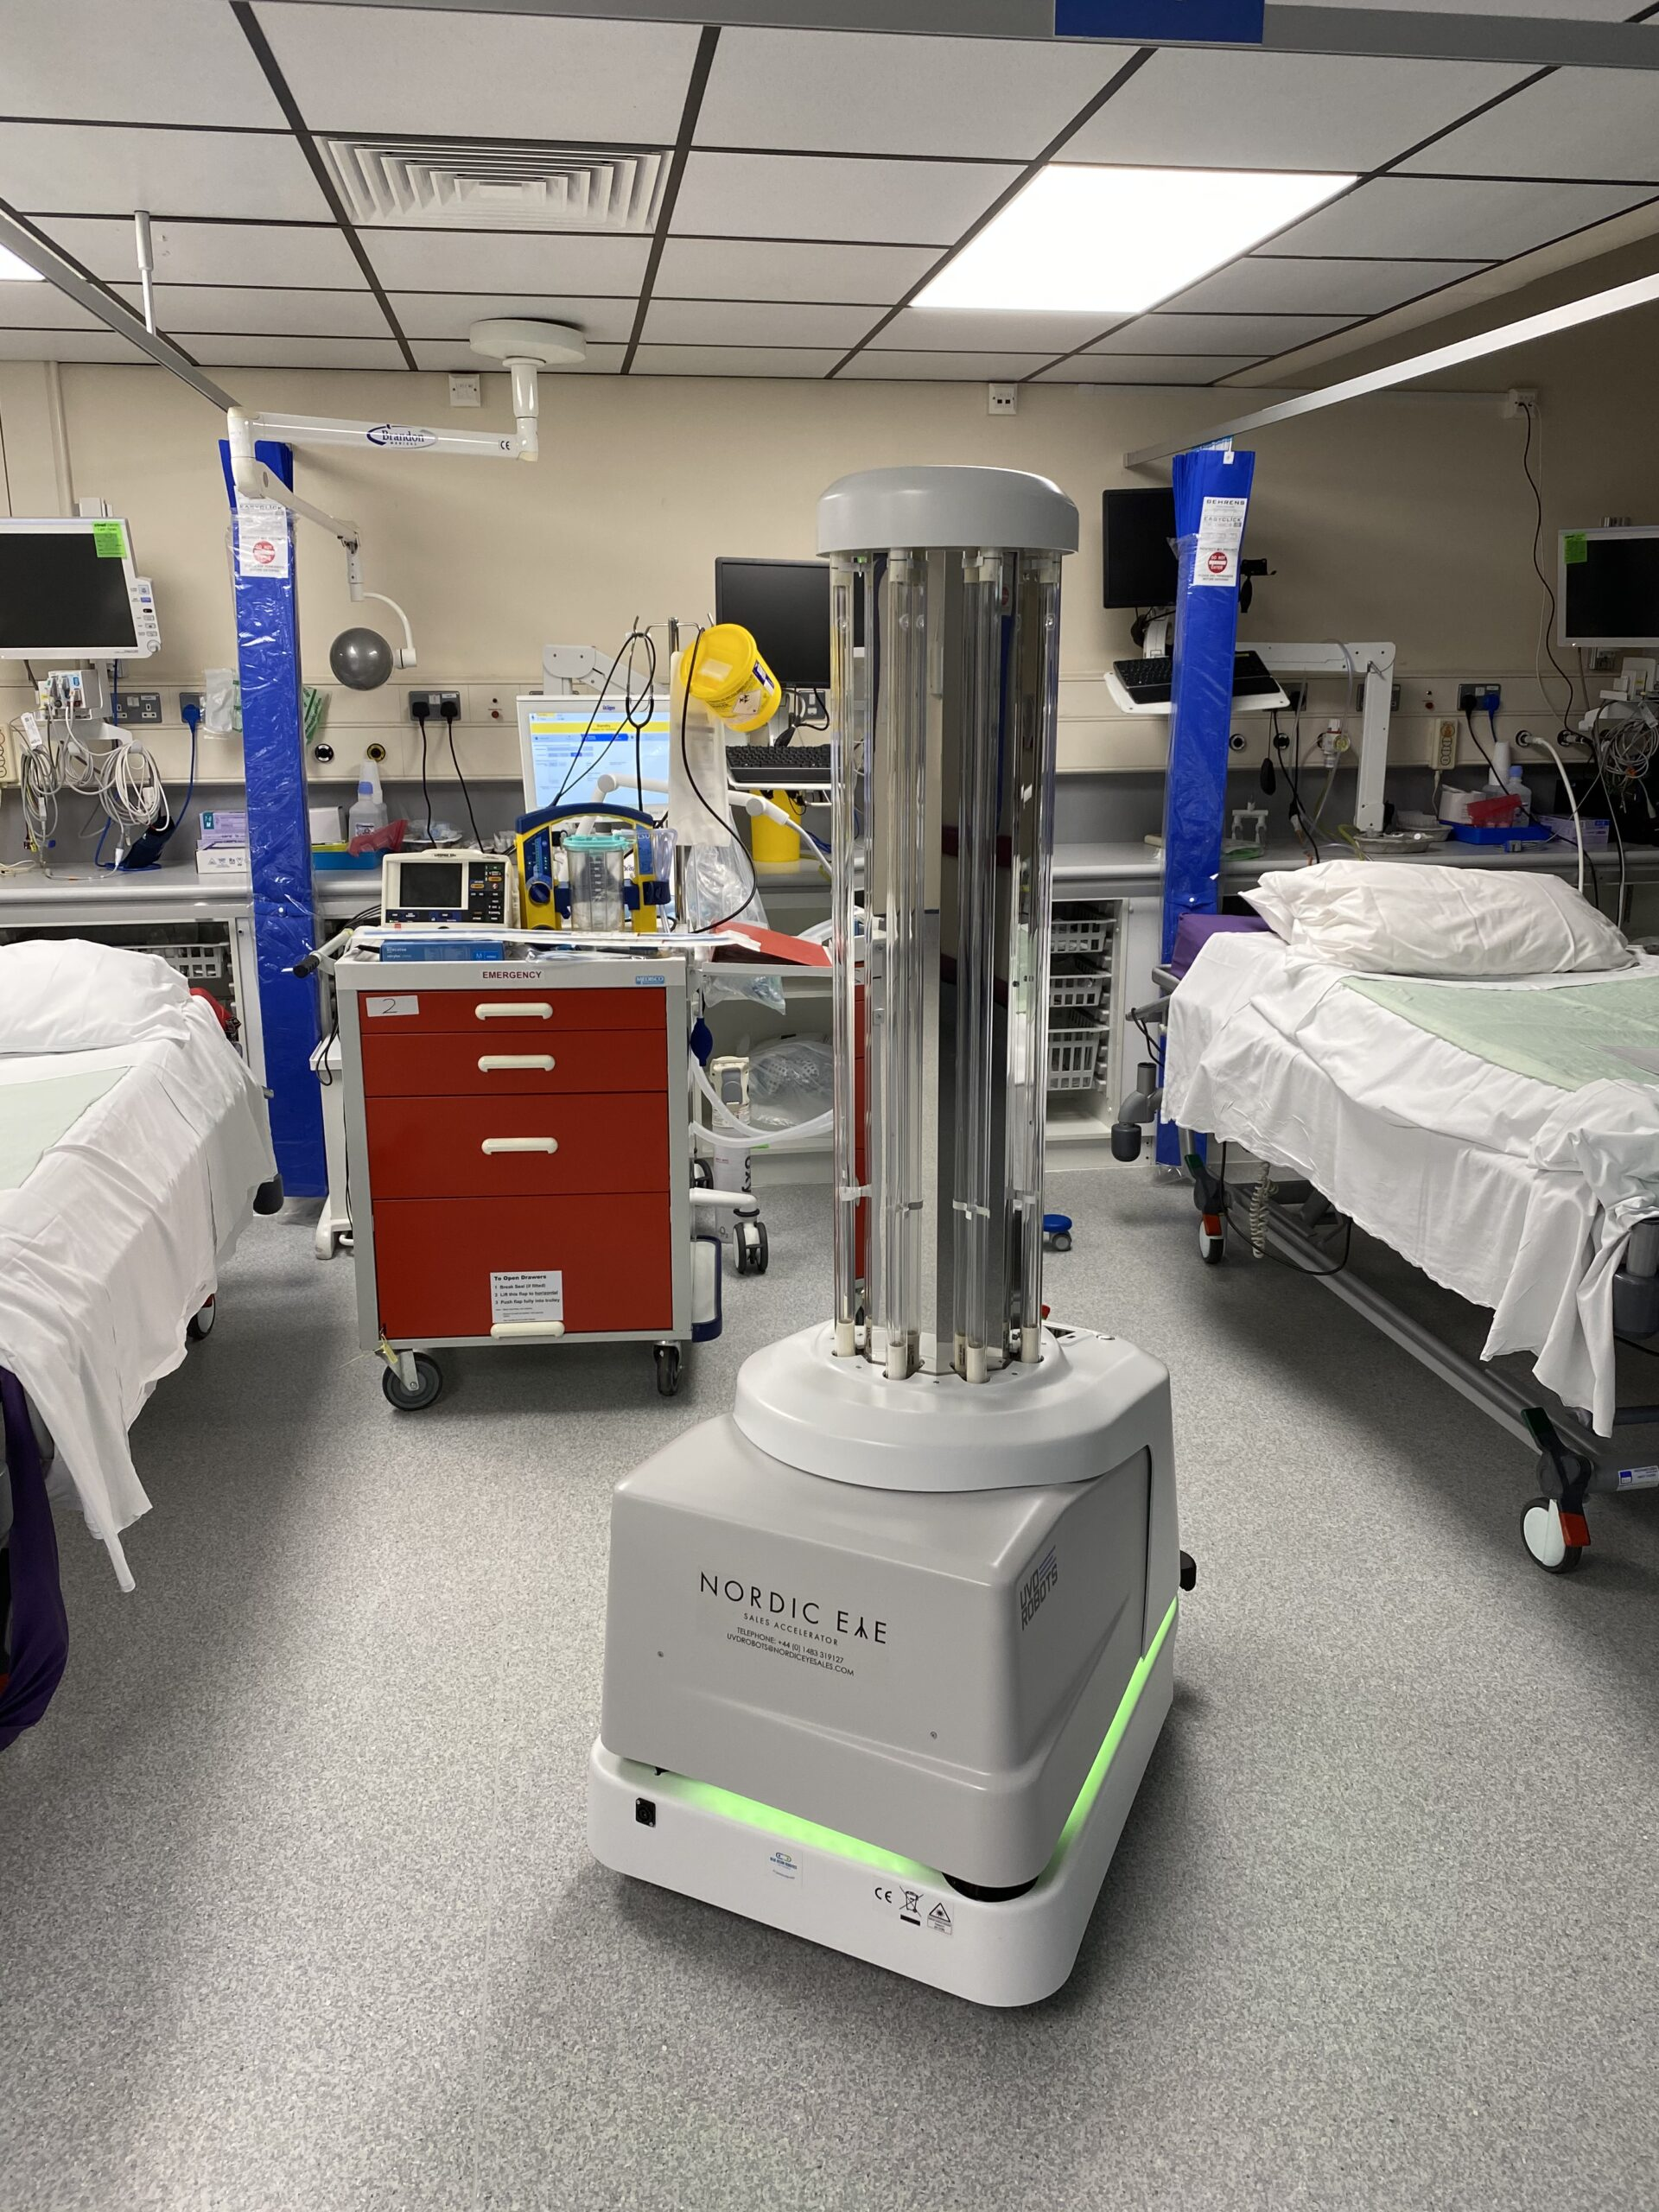 UVD Robot at Frimley for references and testimonials